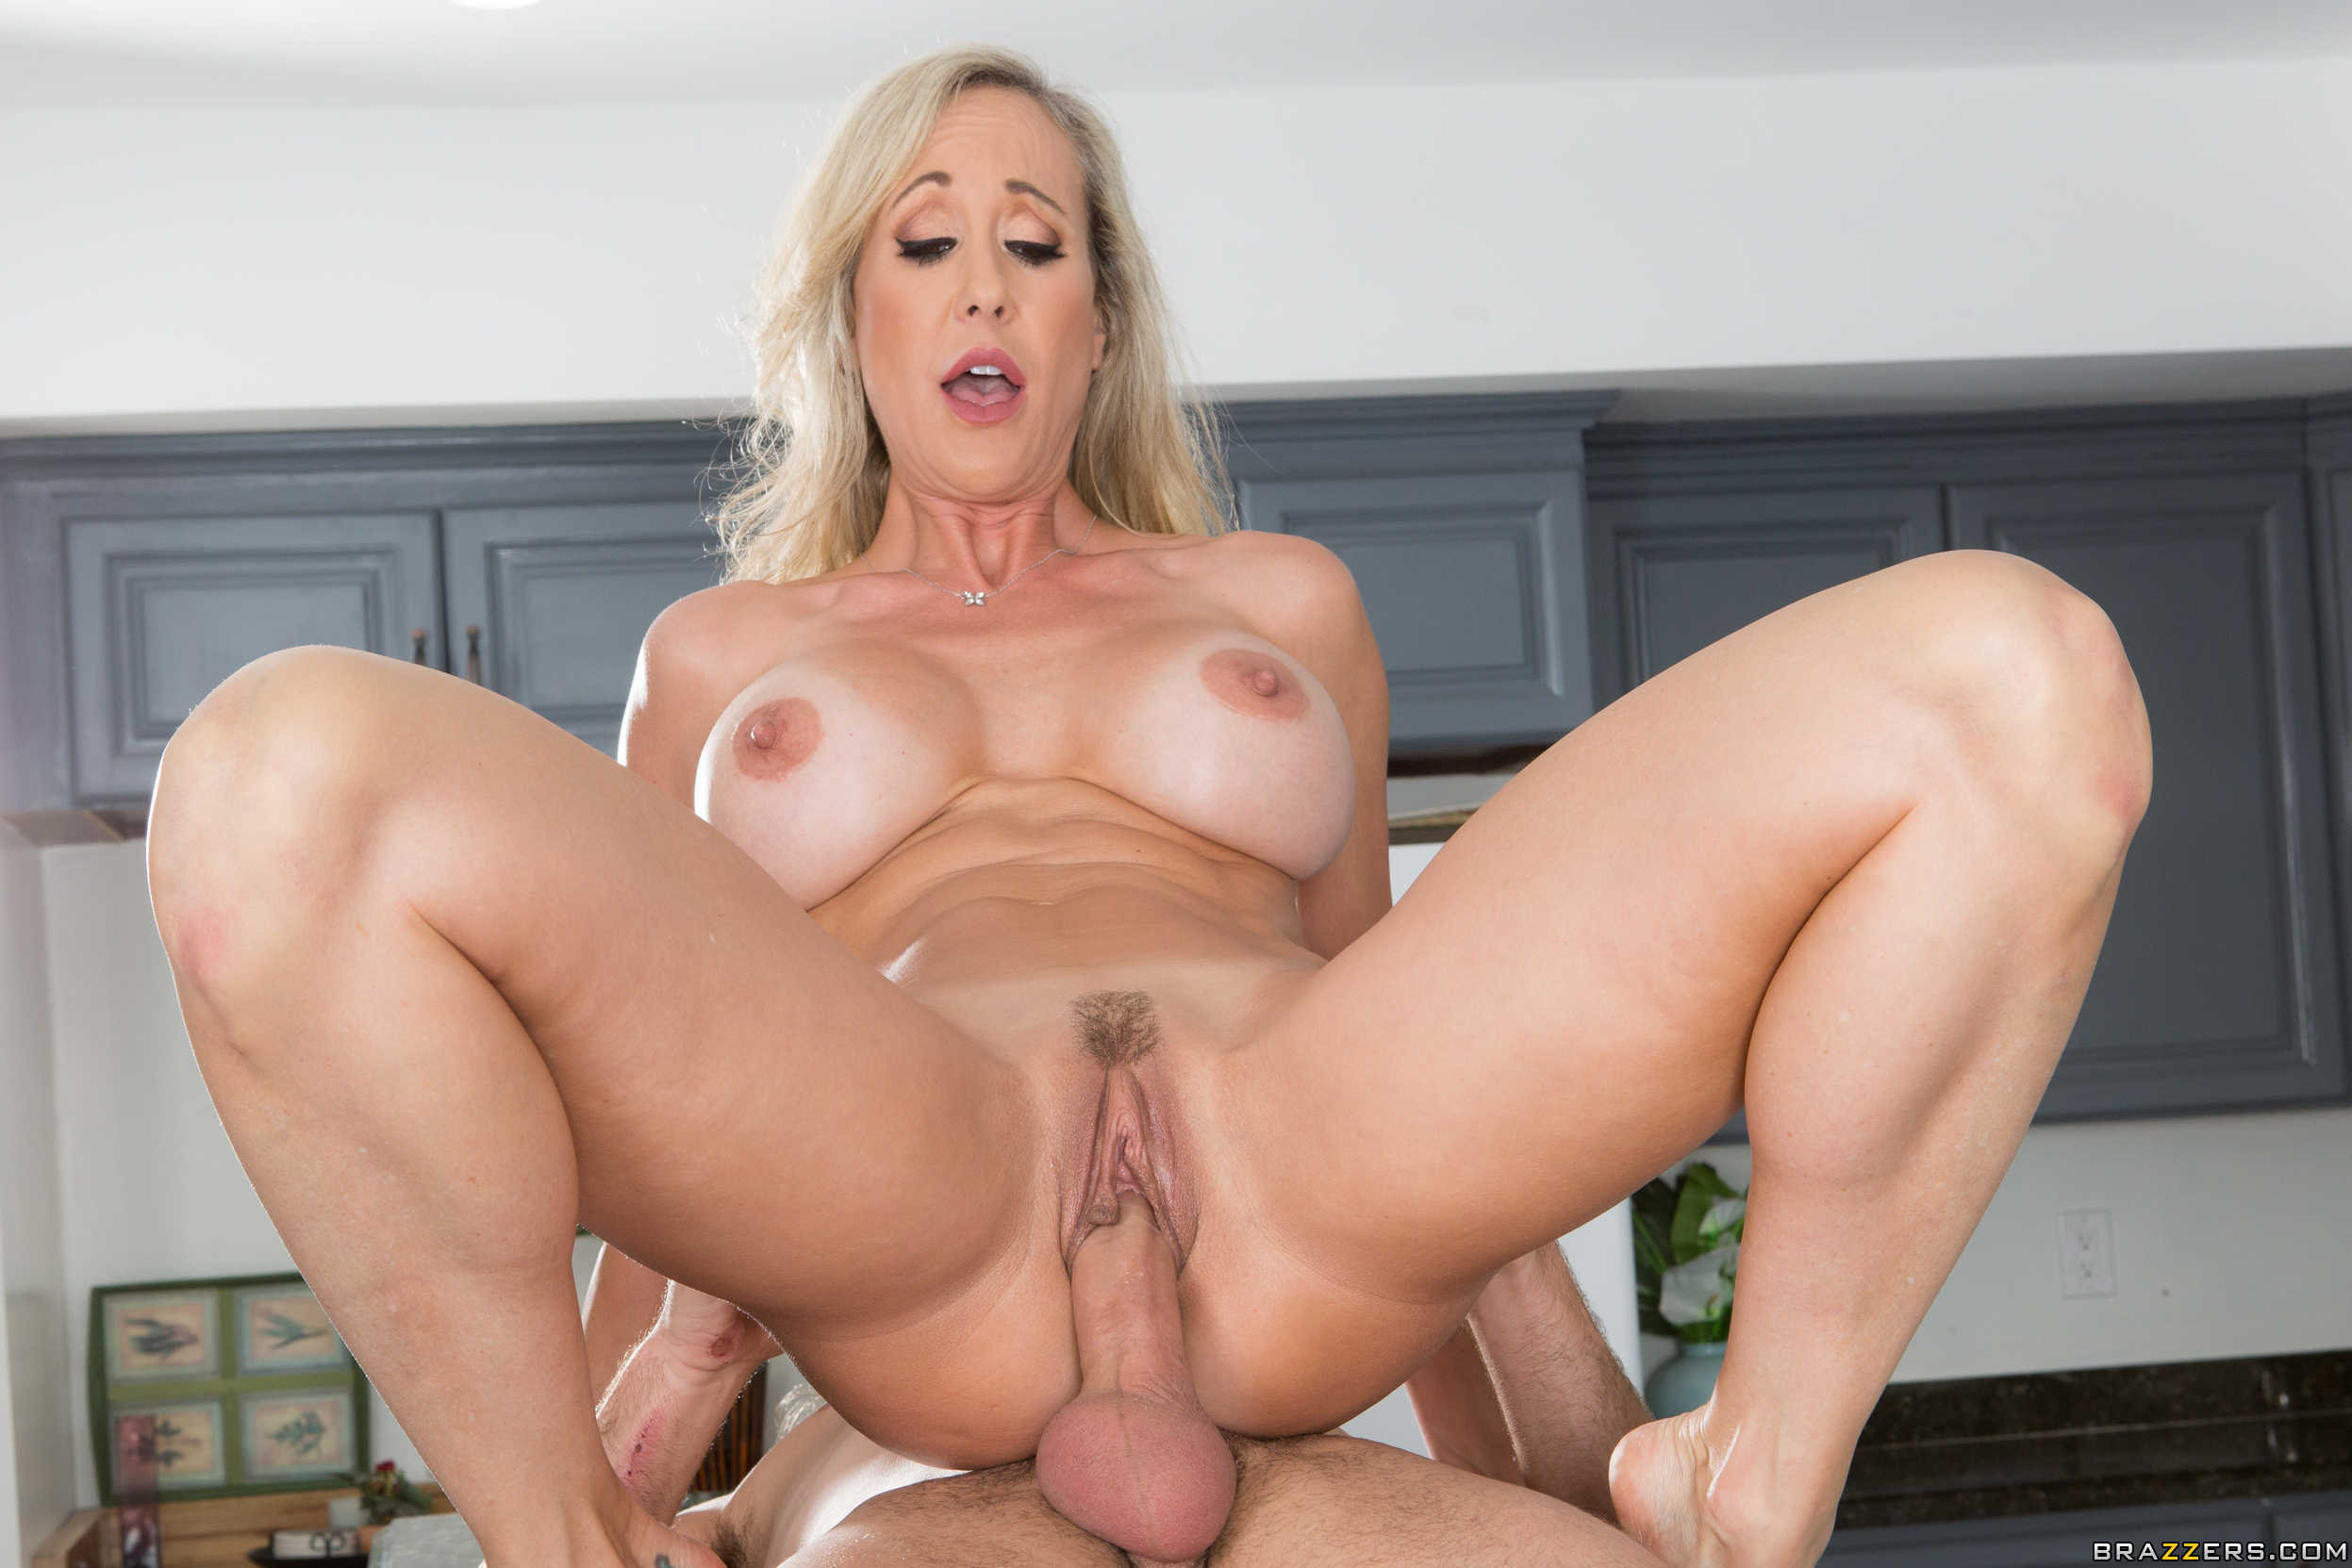 Brandi love biography free images pictures milf porn stars images free pornstars biography